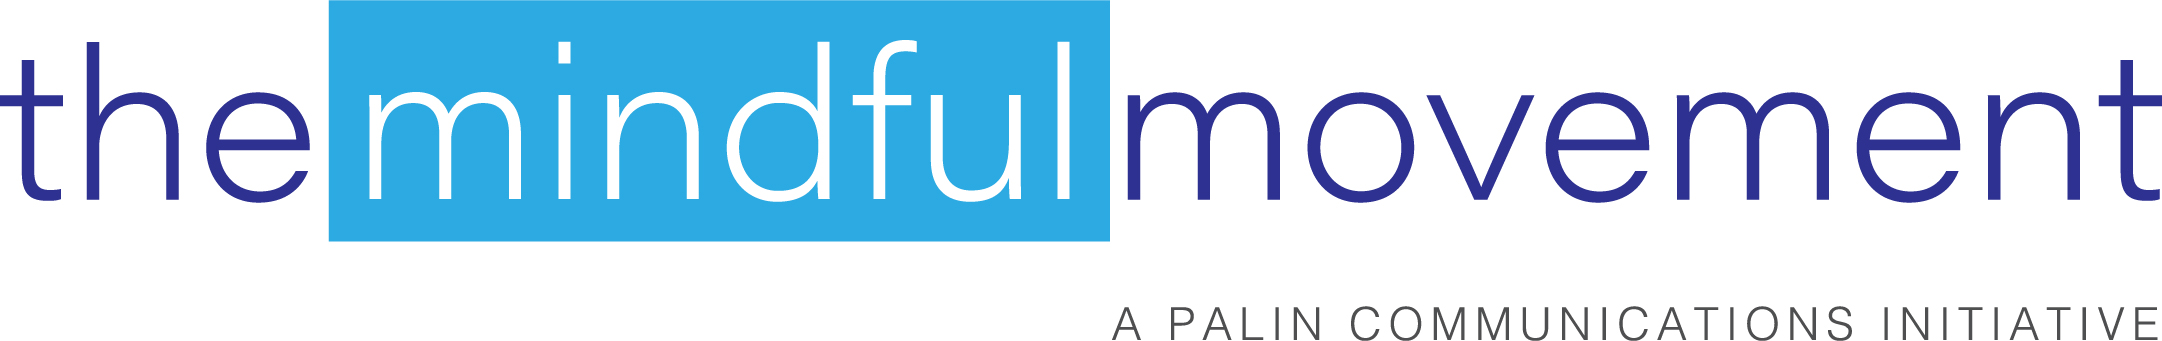 The Mindful Movement by Palin Communications